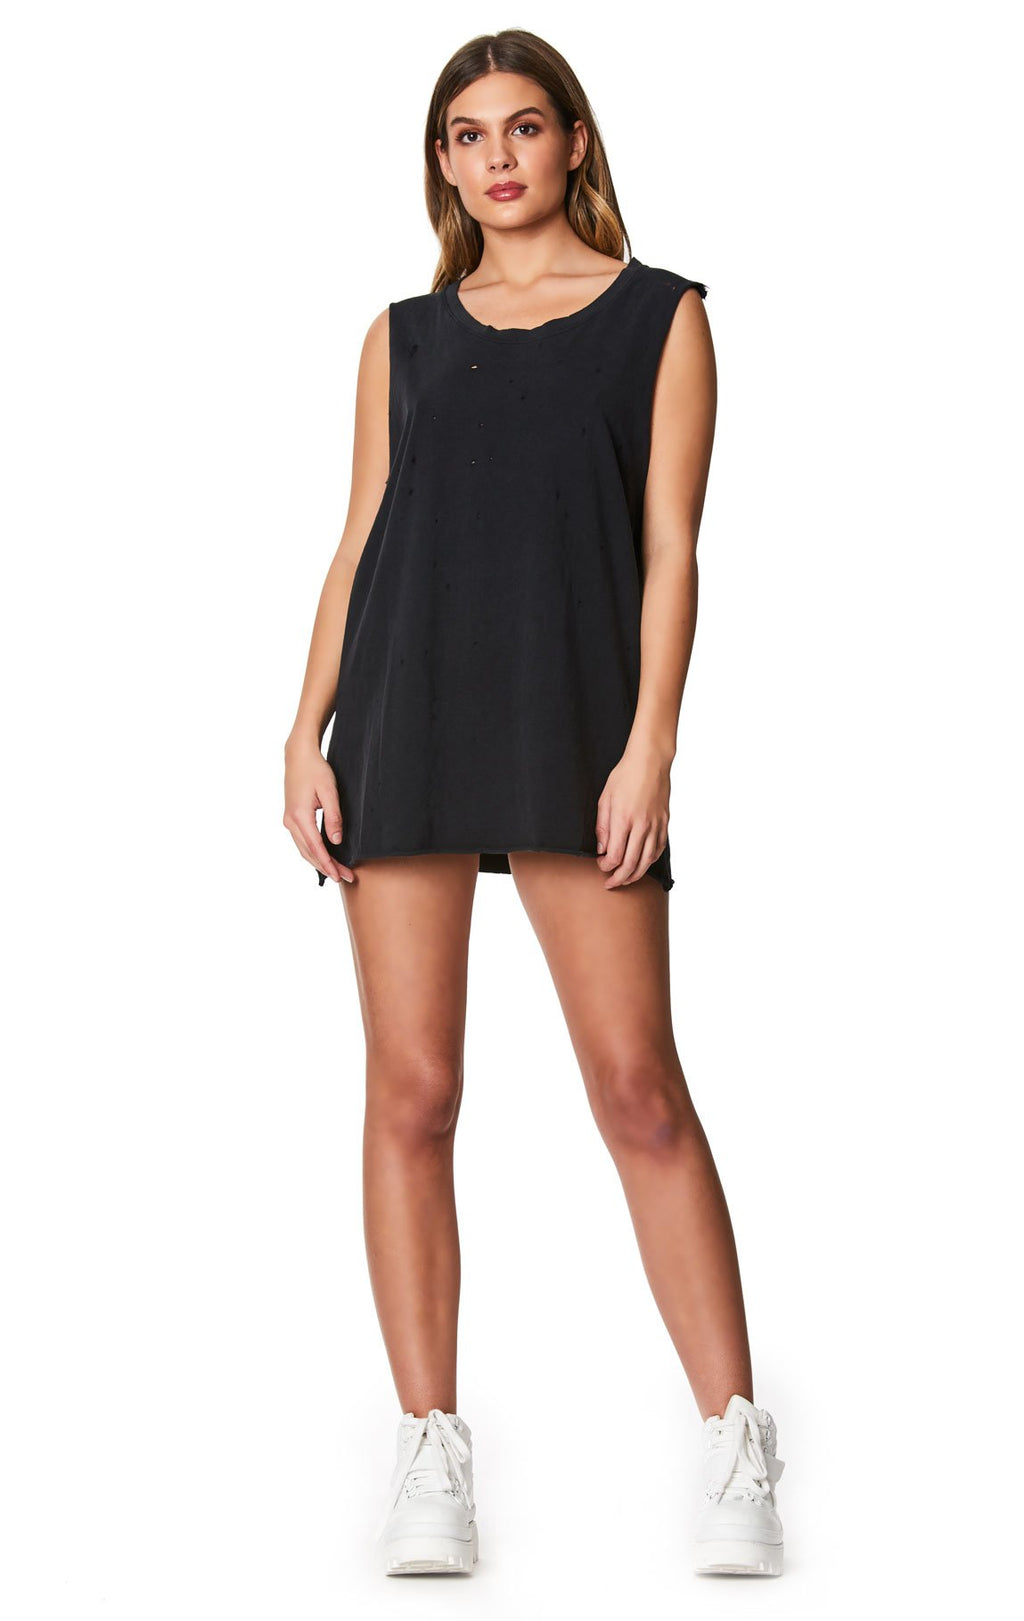 OVERSIZED CUT OUT ARM TANK